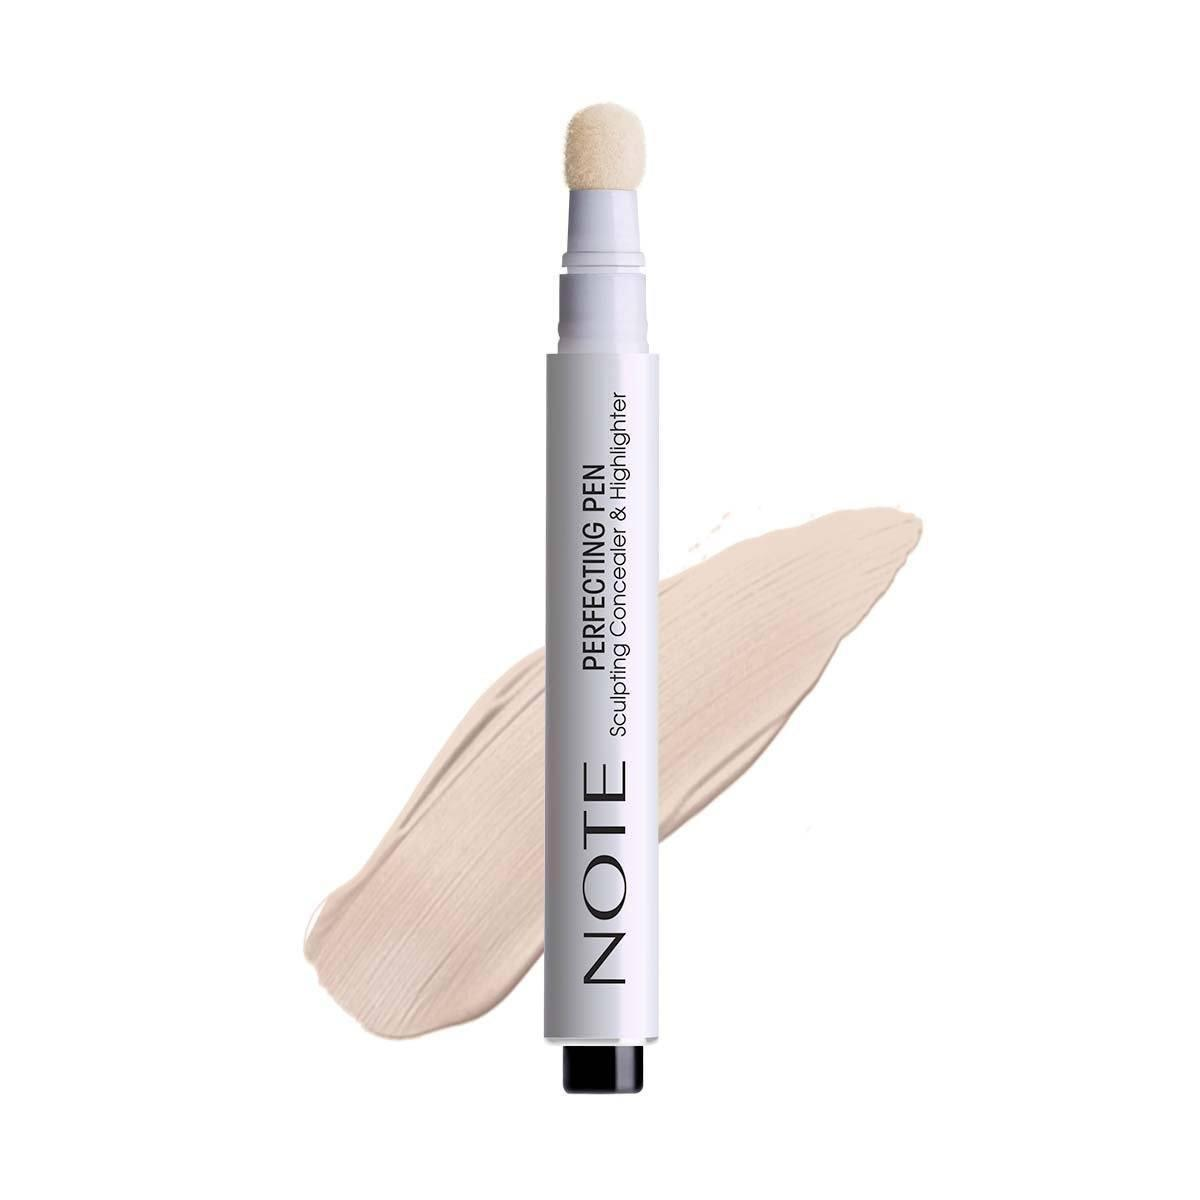 Note Perfecting Concealer & Highlighter Pen